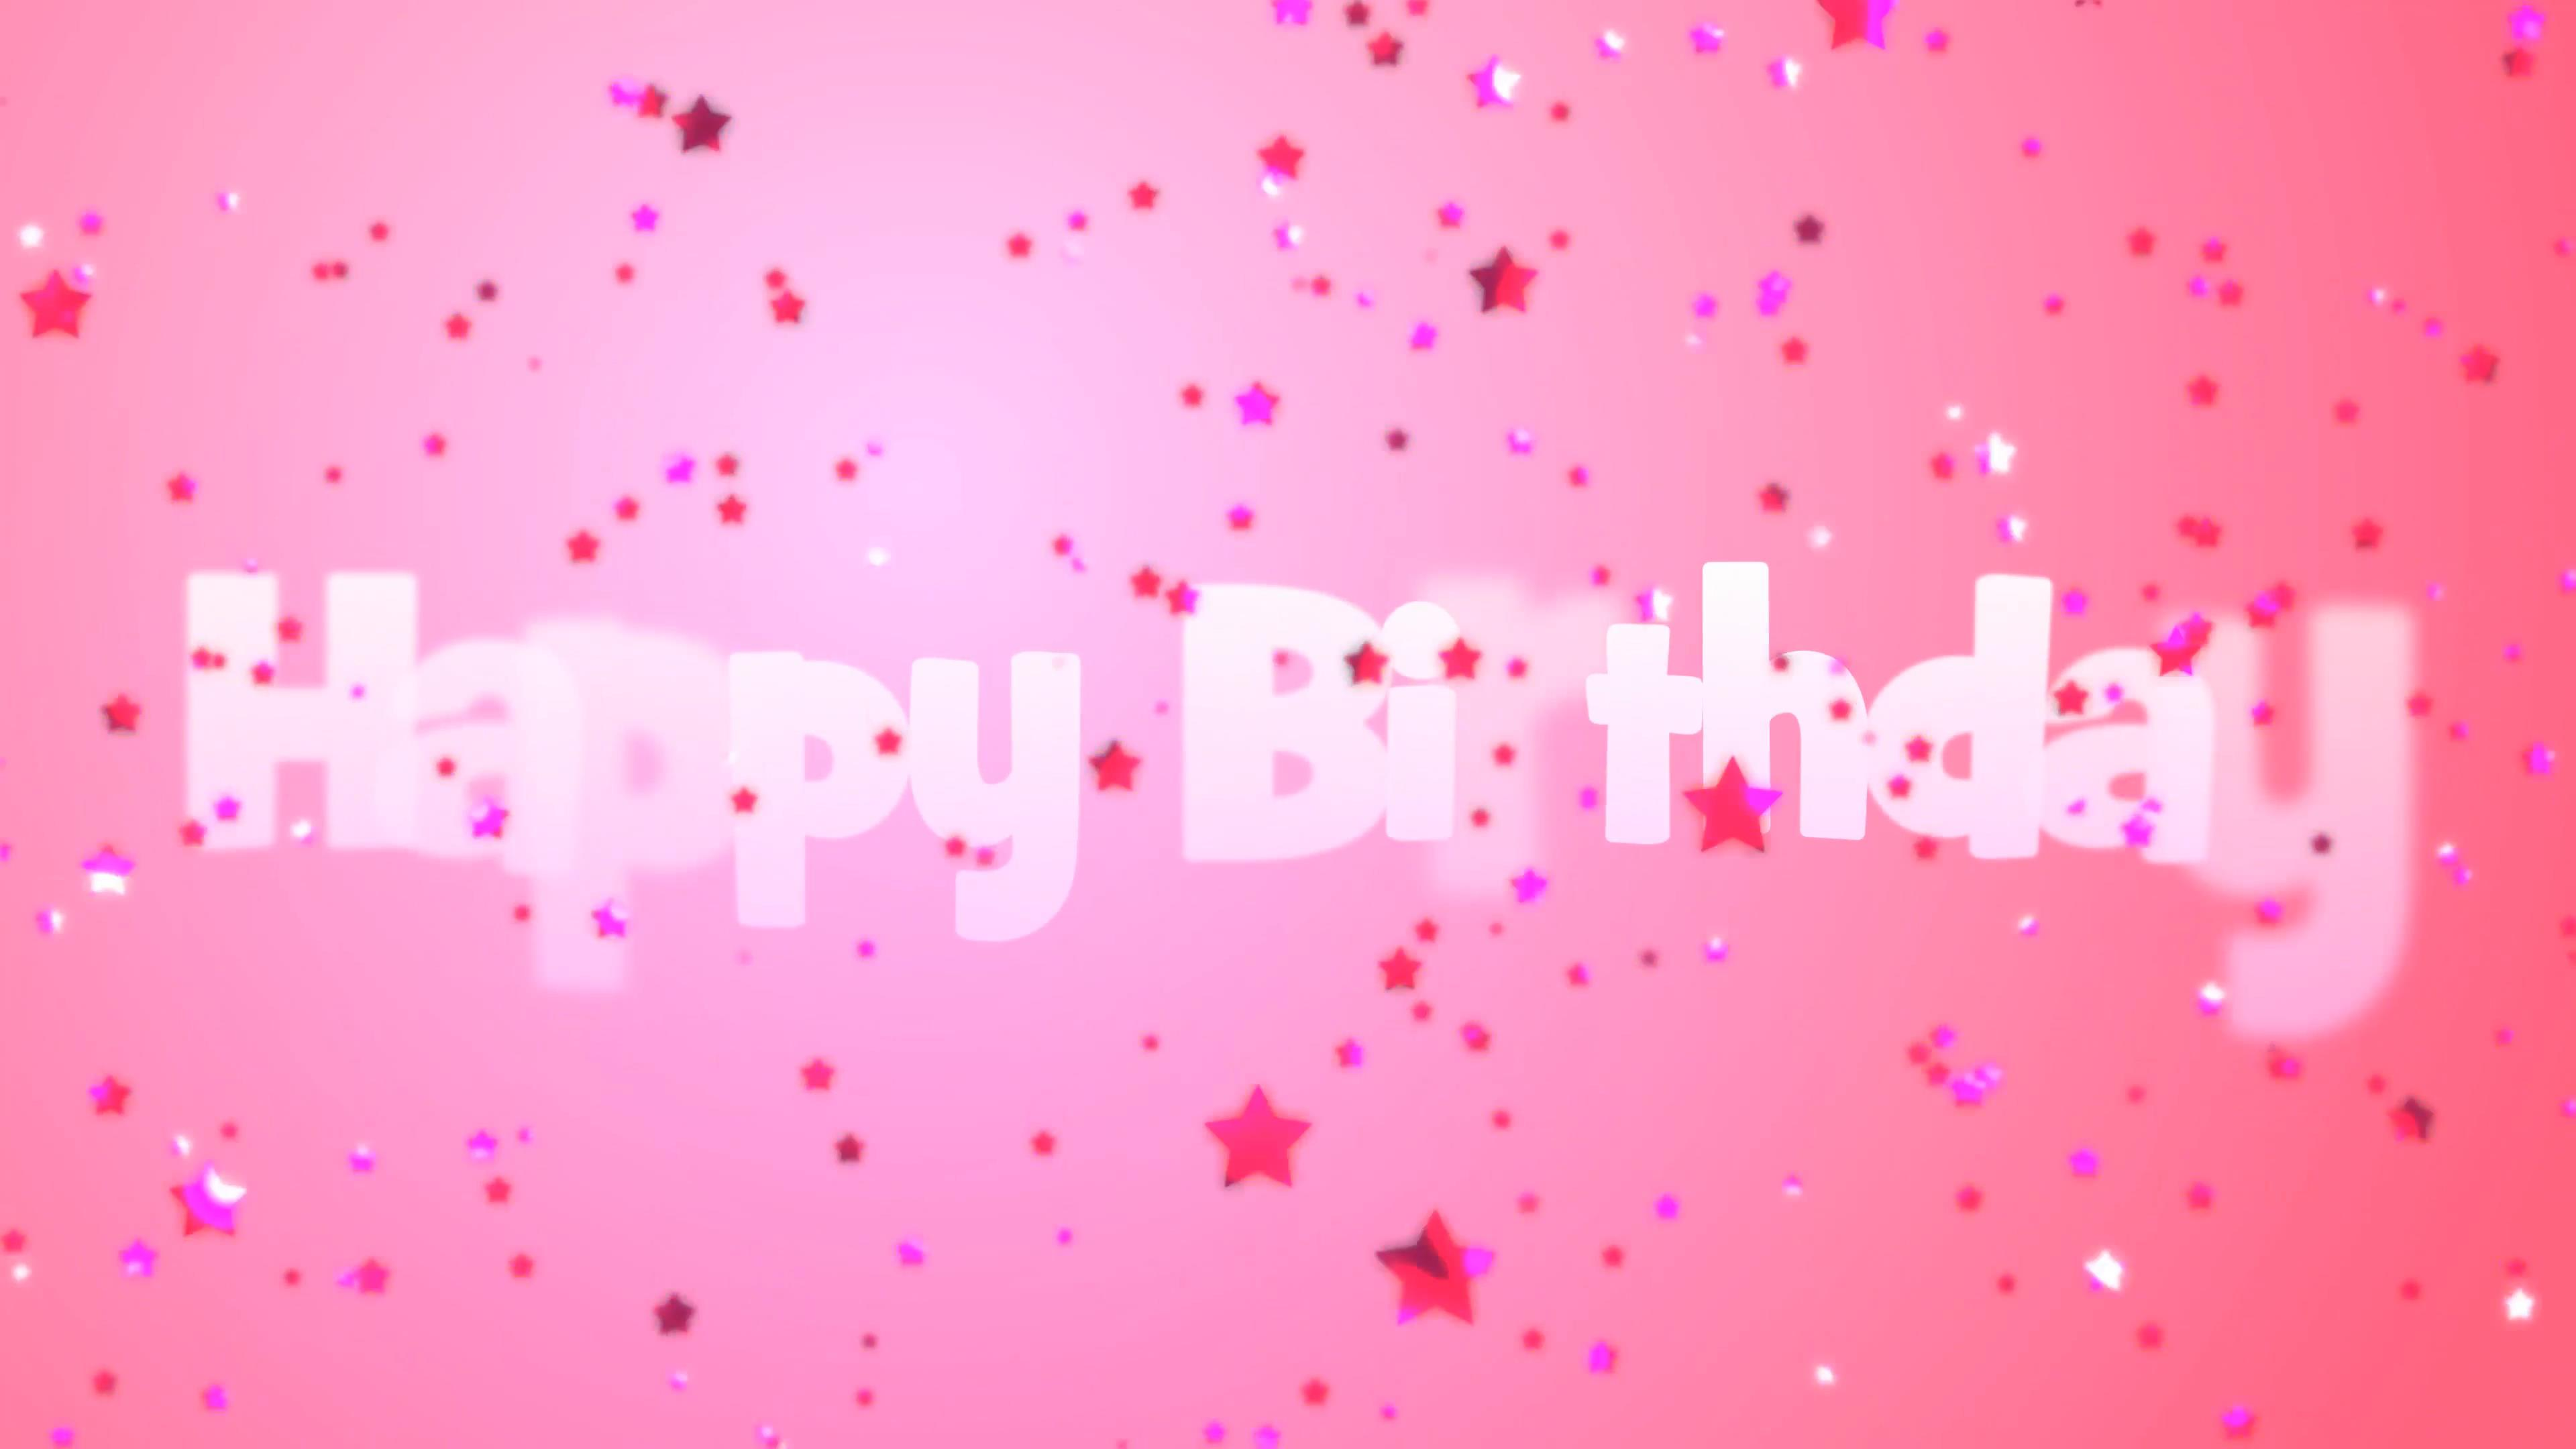 birthday message background ; happy-birthday-message-with-pink-falling-stars-on-a-pink-background_bphl5vfm__F0004